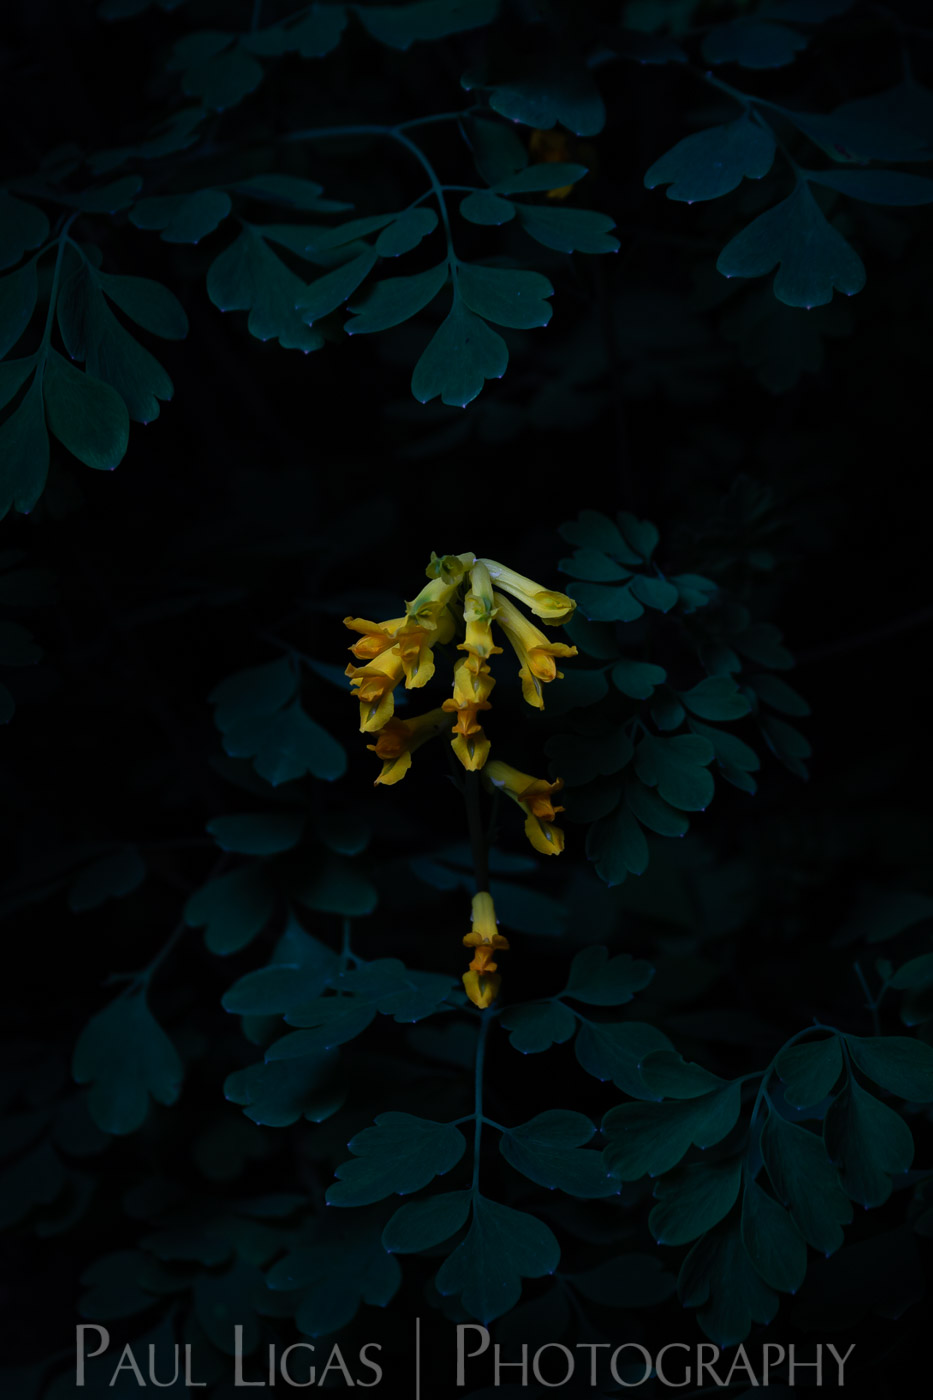 Portraits of Wildflowers at Night - Paul Ligas Photography Herefordshire - Birds-Foot Trefoil-5748